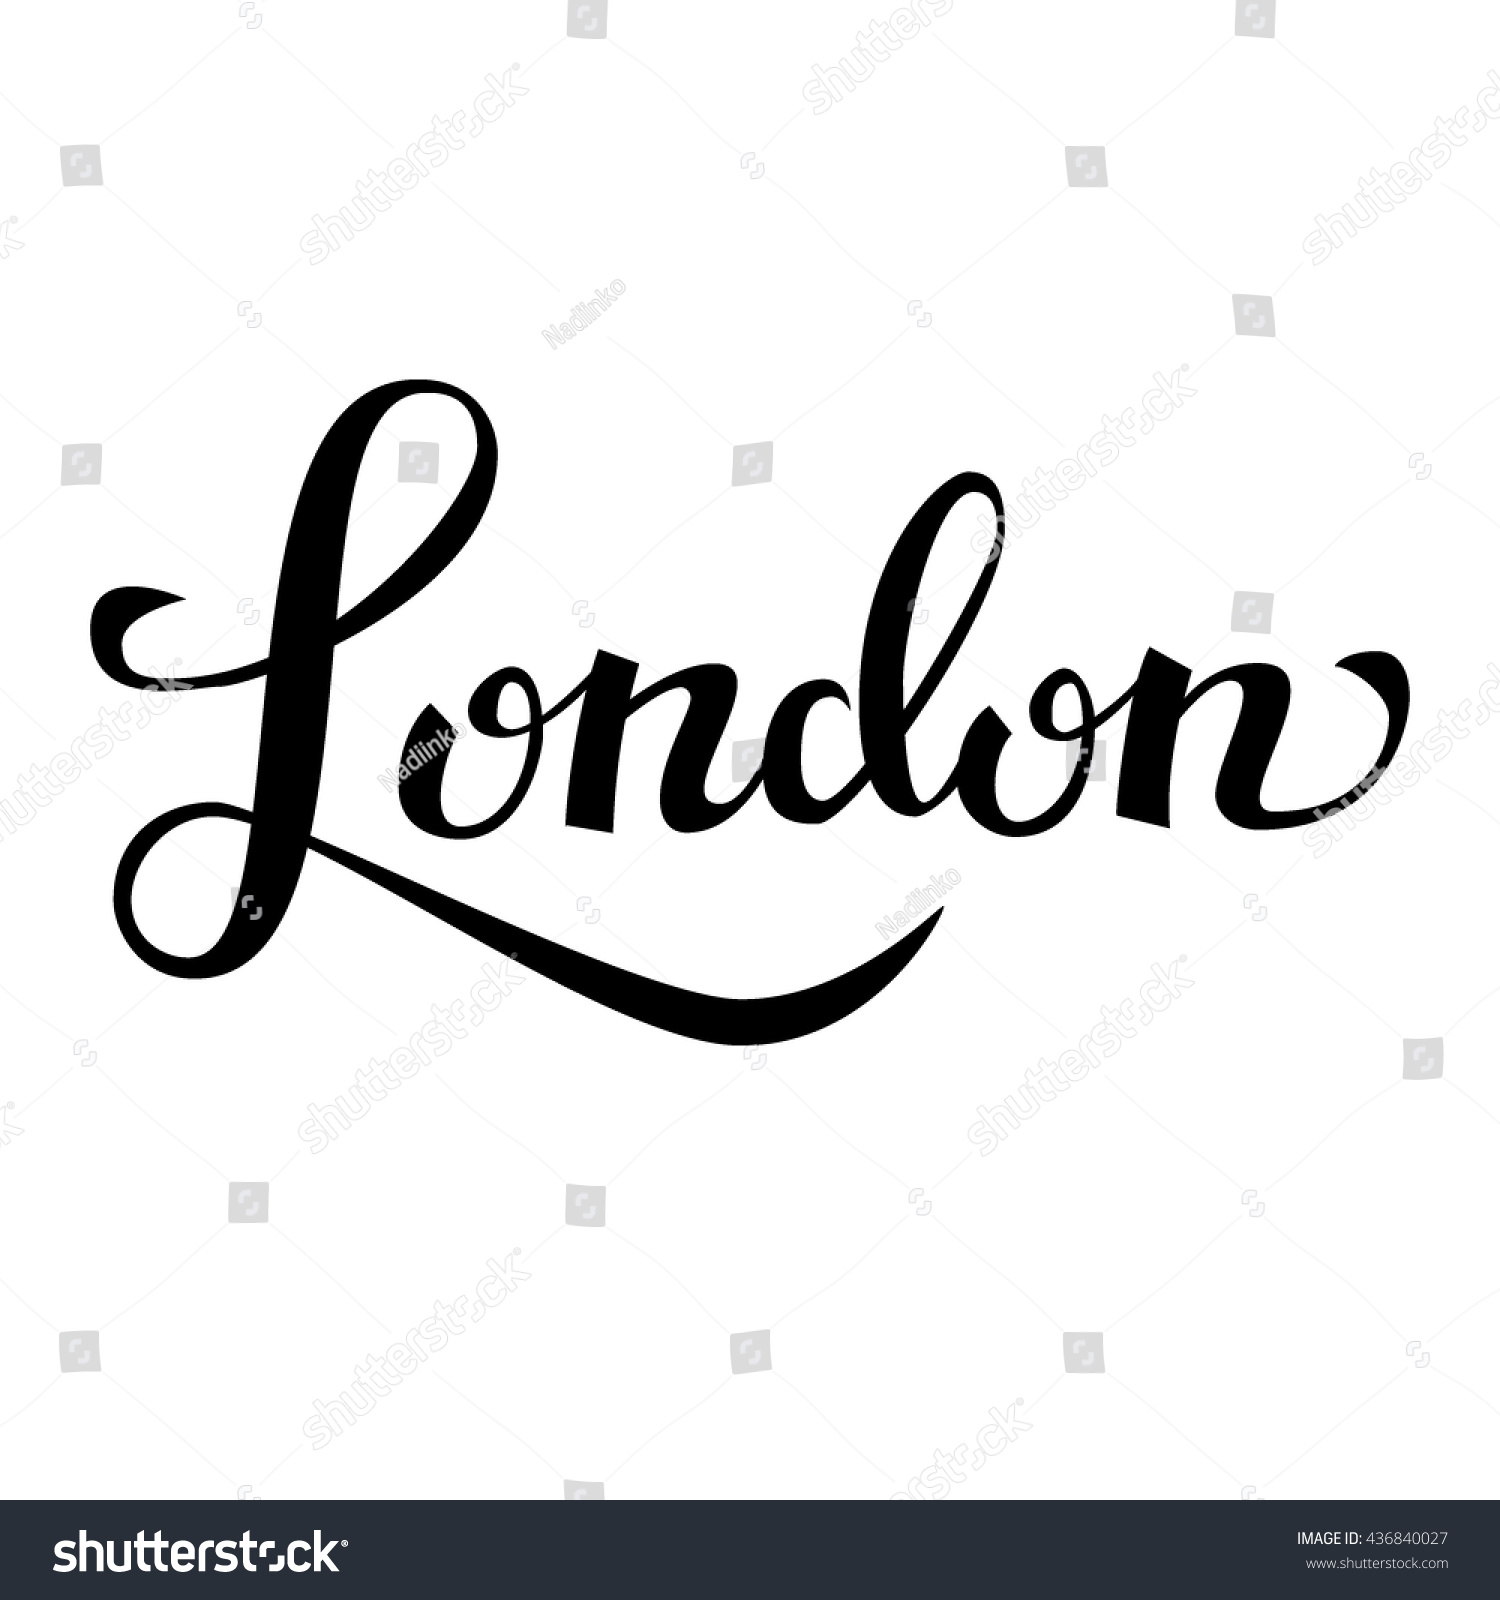 London hand drawn vector lettering modern calligraphy